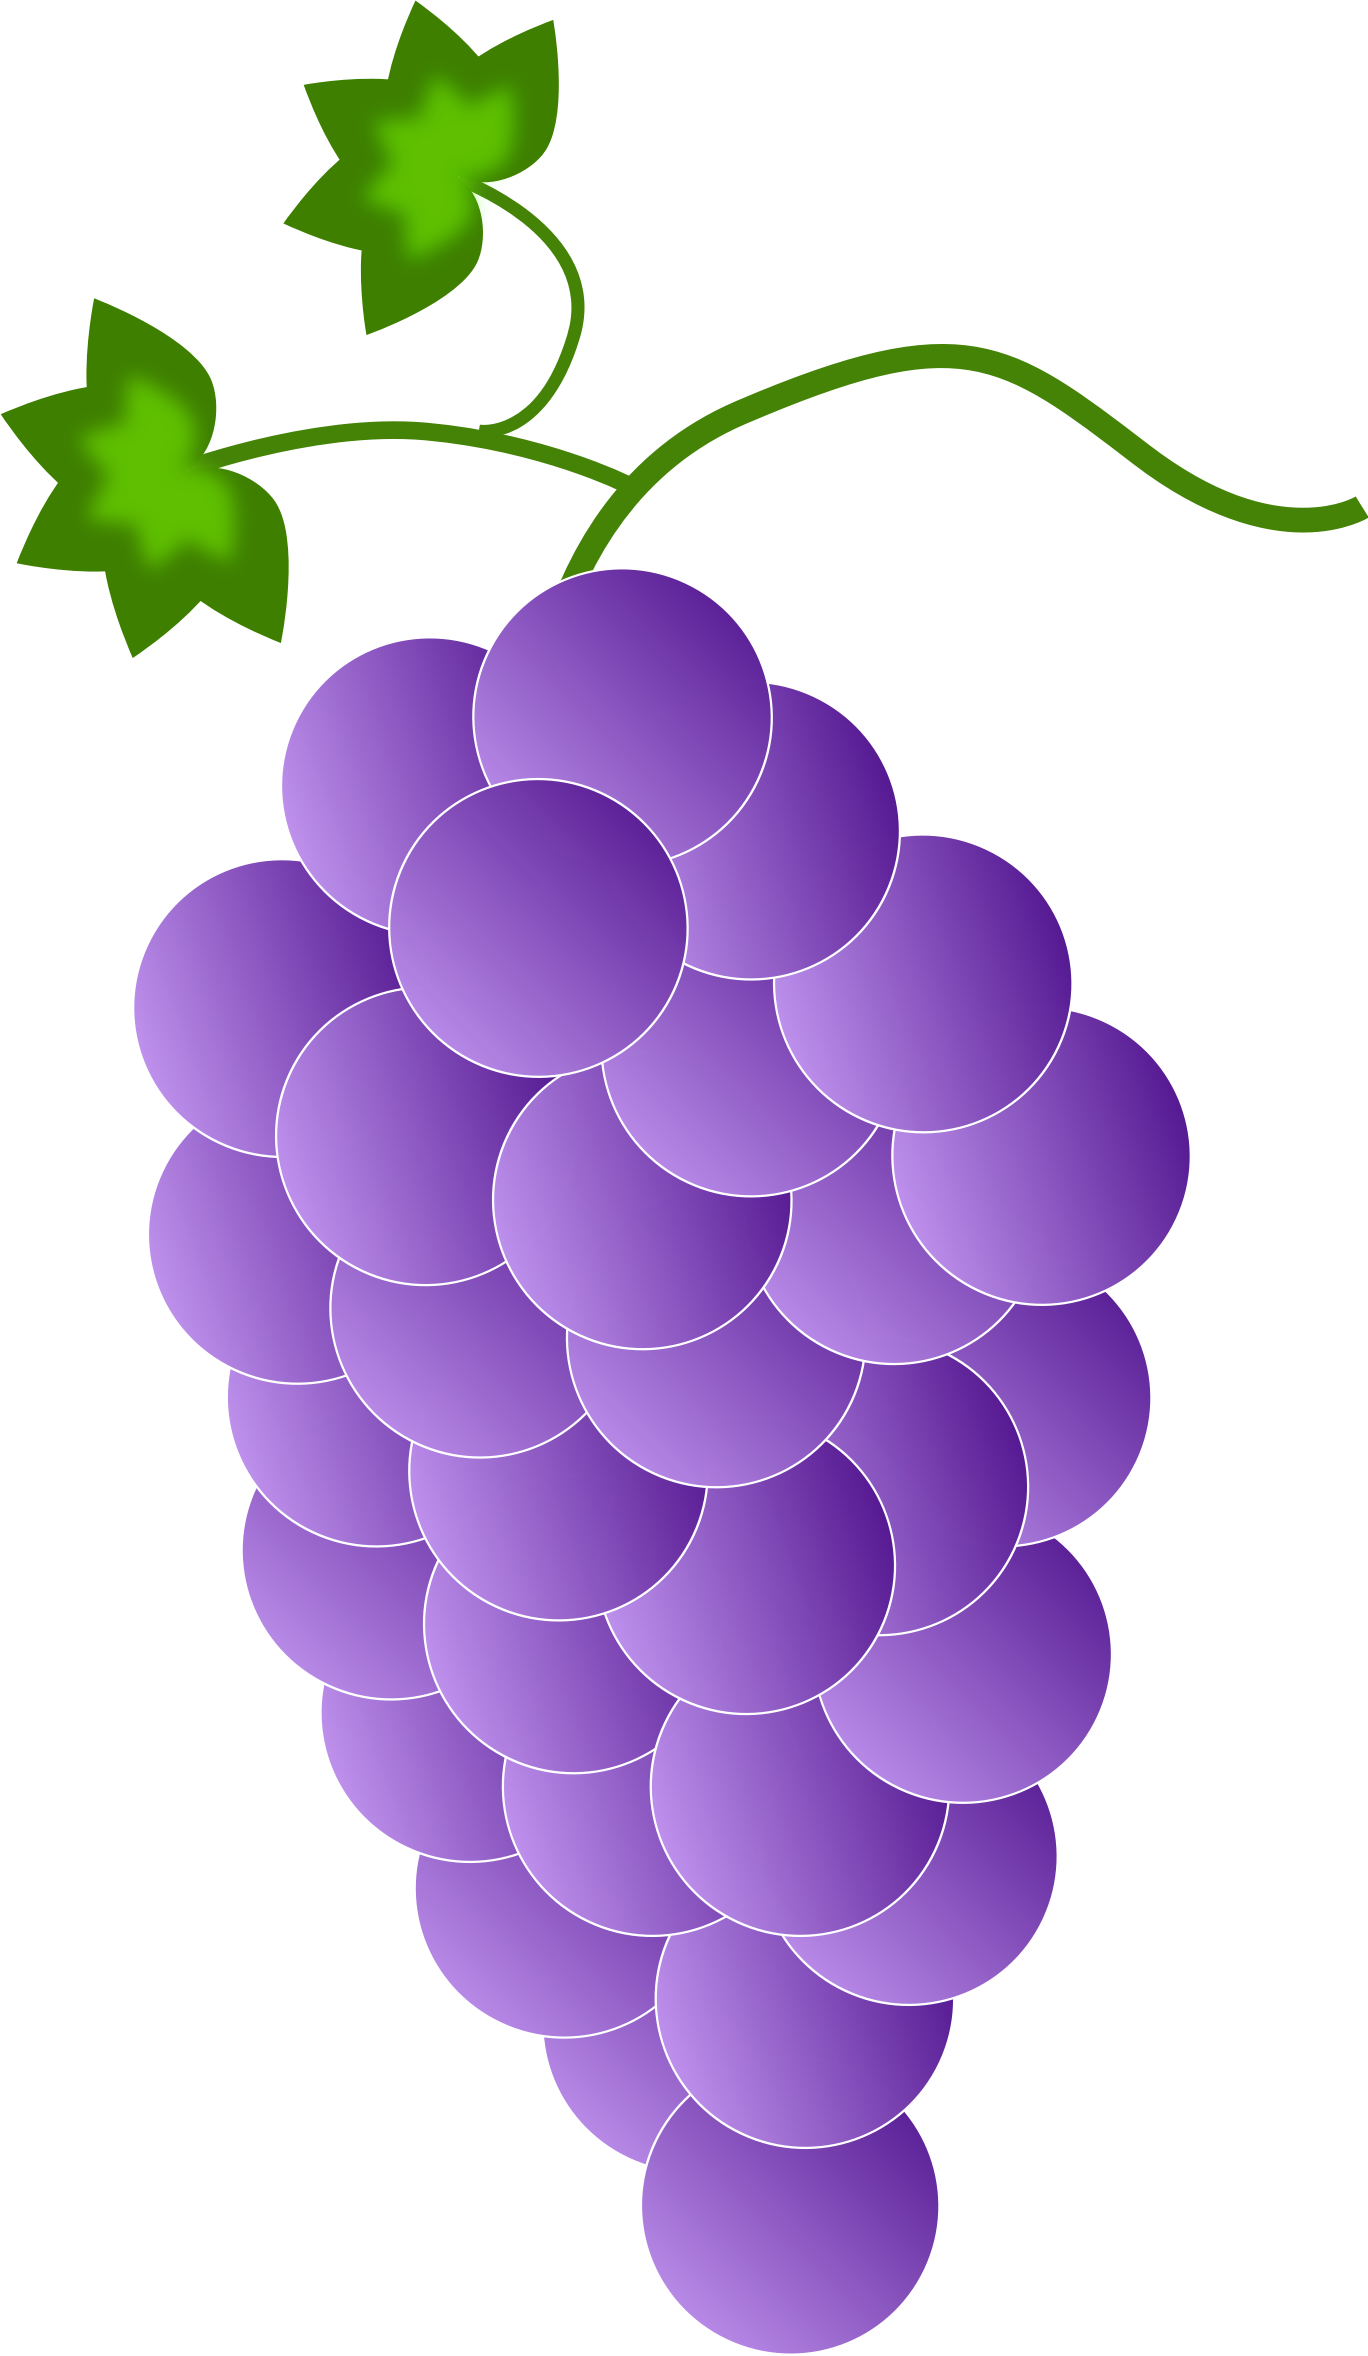 purple grapes by Astro